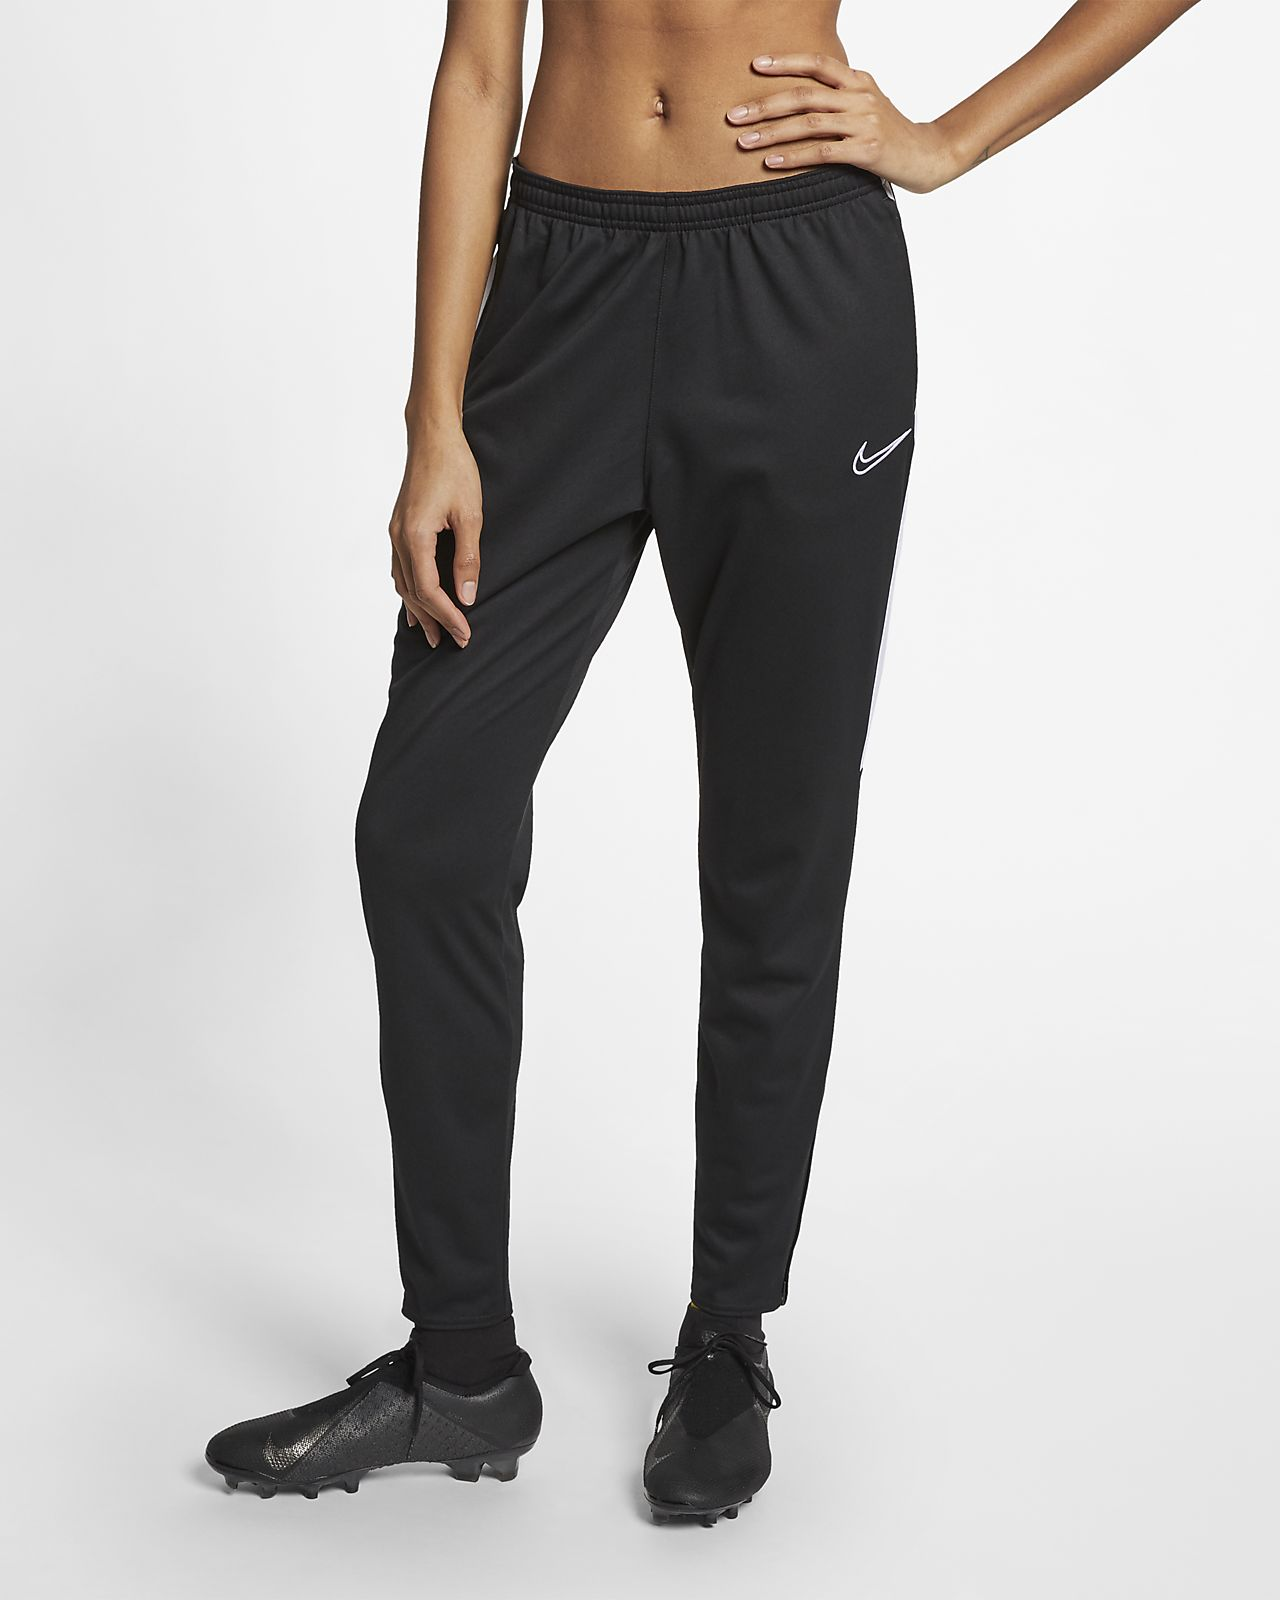 Nike Dri-FIT Academy Women's Football Pants